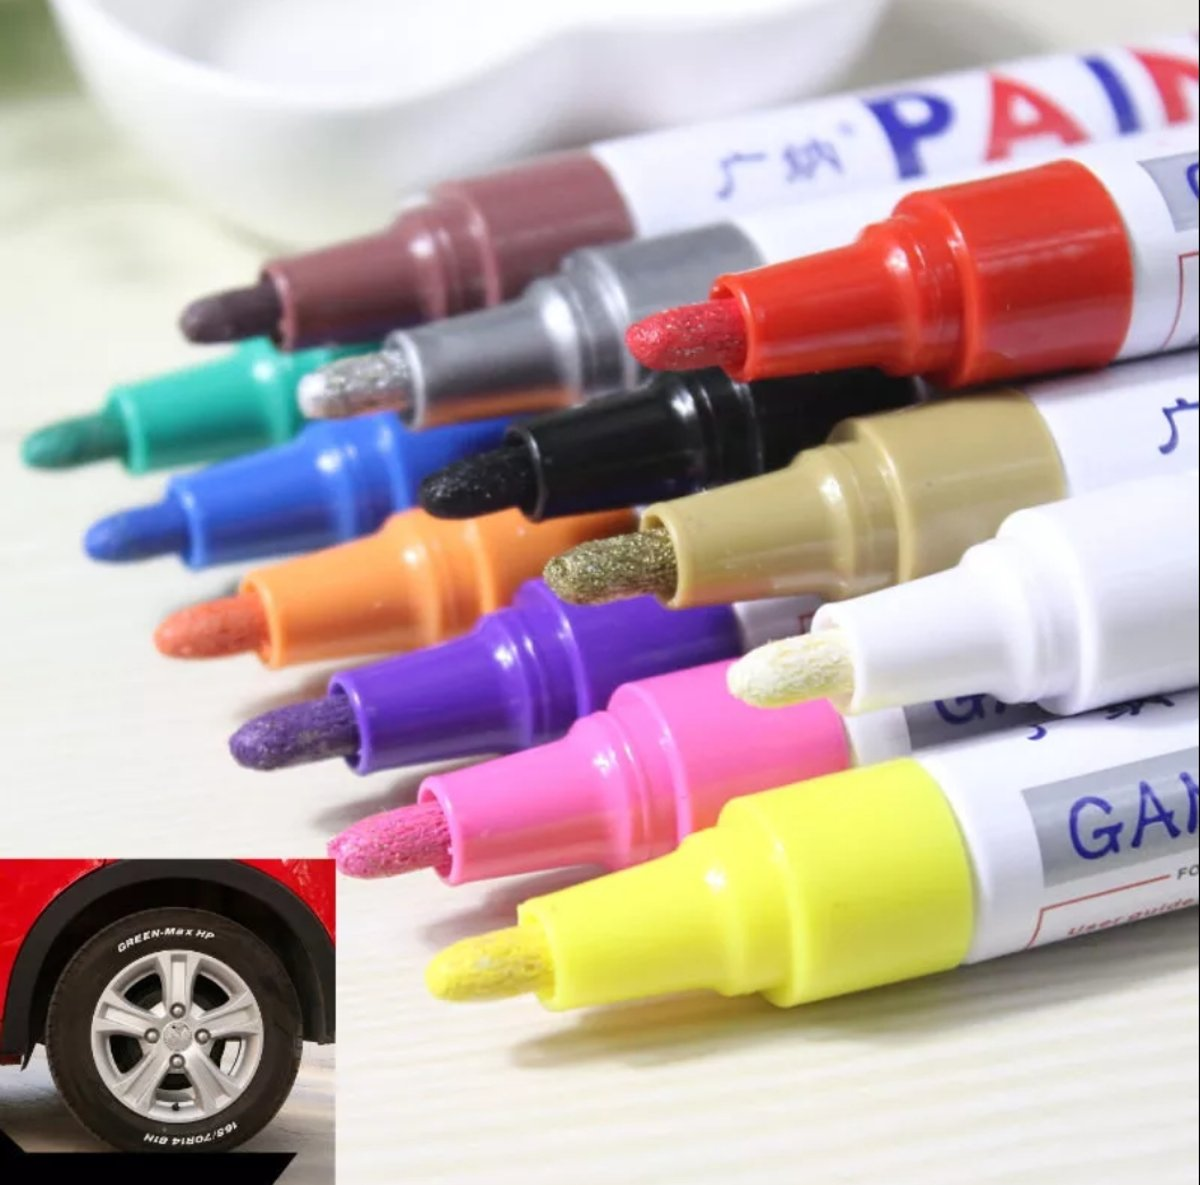 PAINT MARKER PERMANENT GOUD STIFT KINDEREN KNUTSELEN METALLIC